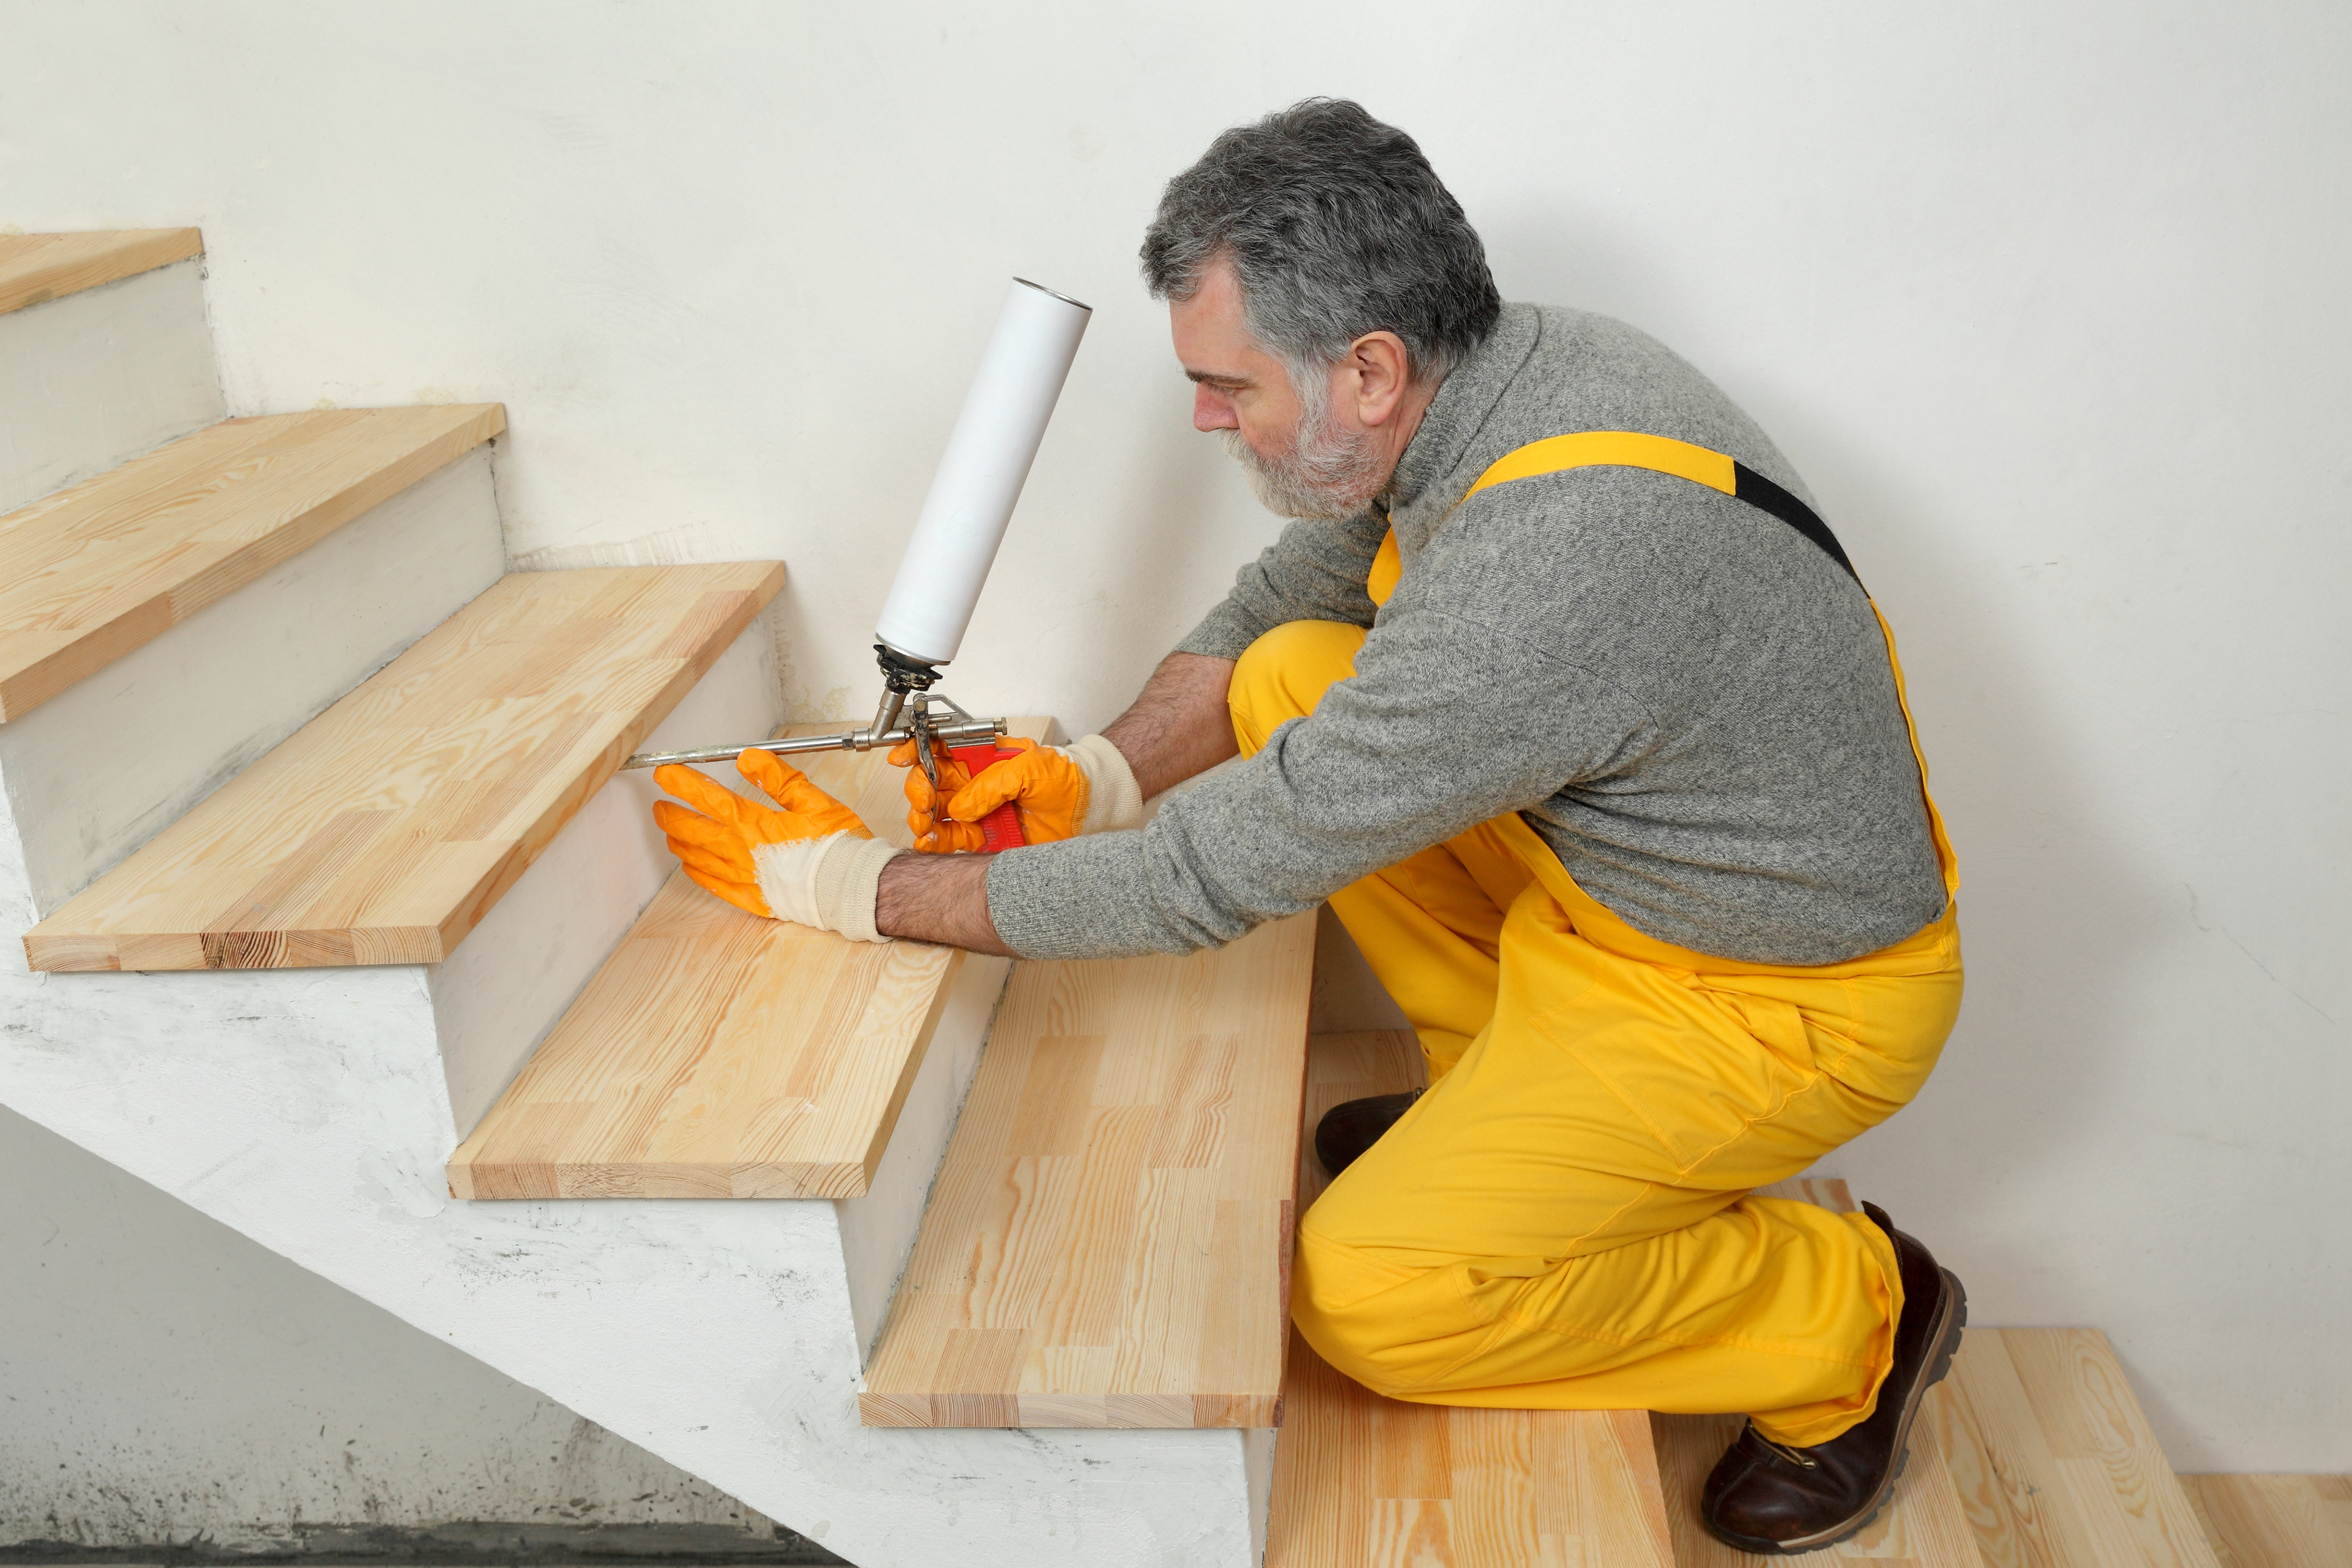 How to Strip Polyurethane From Wood | Home Guides | SF Gate